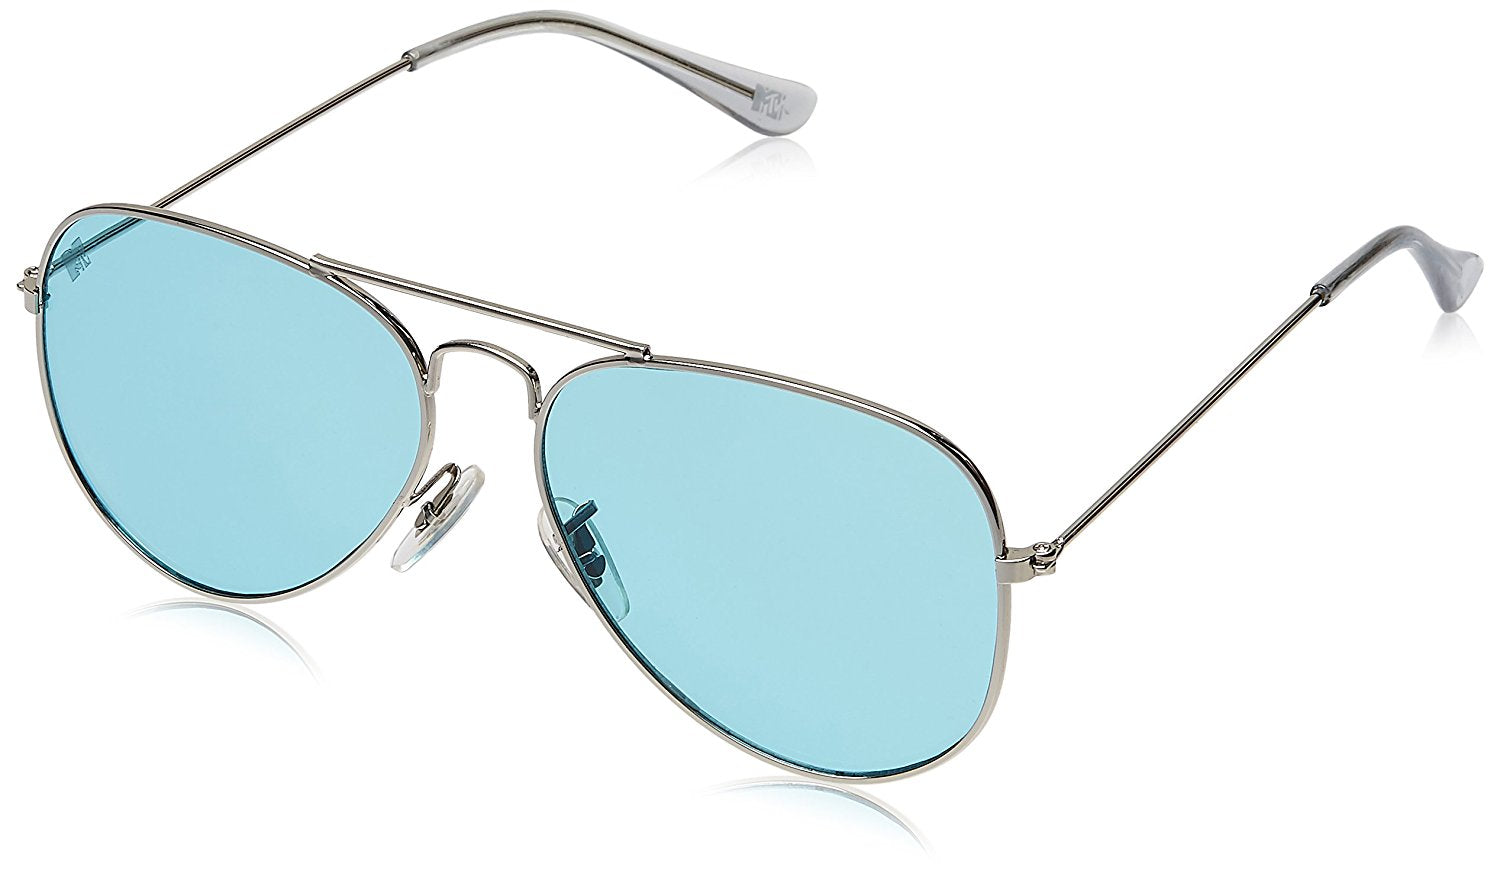 MTV Aviator Sunglasses |MTV-123-C21|